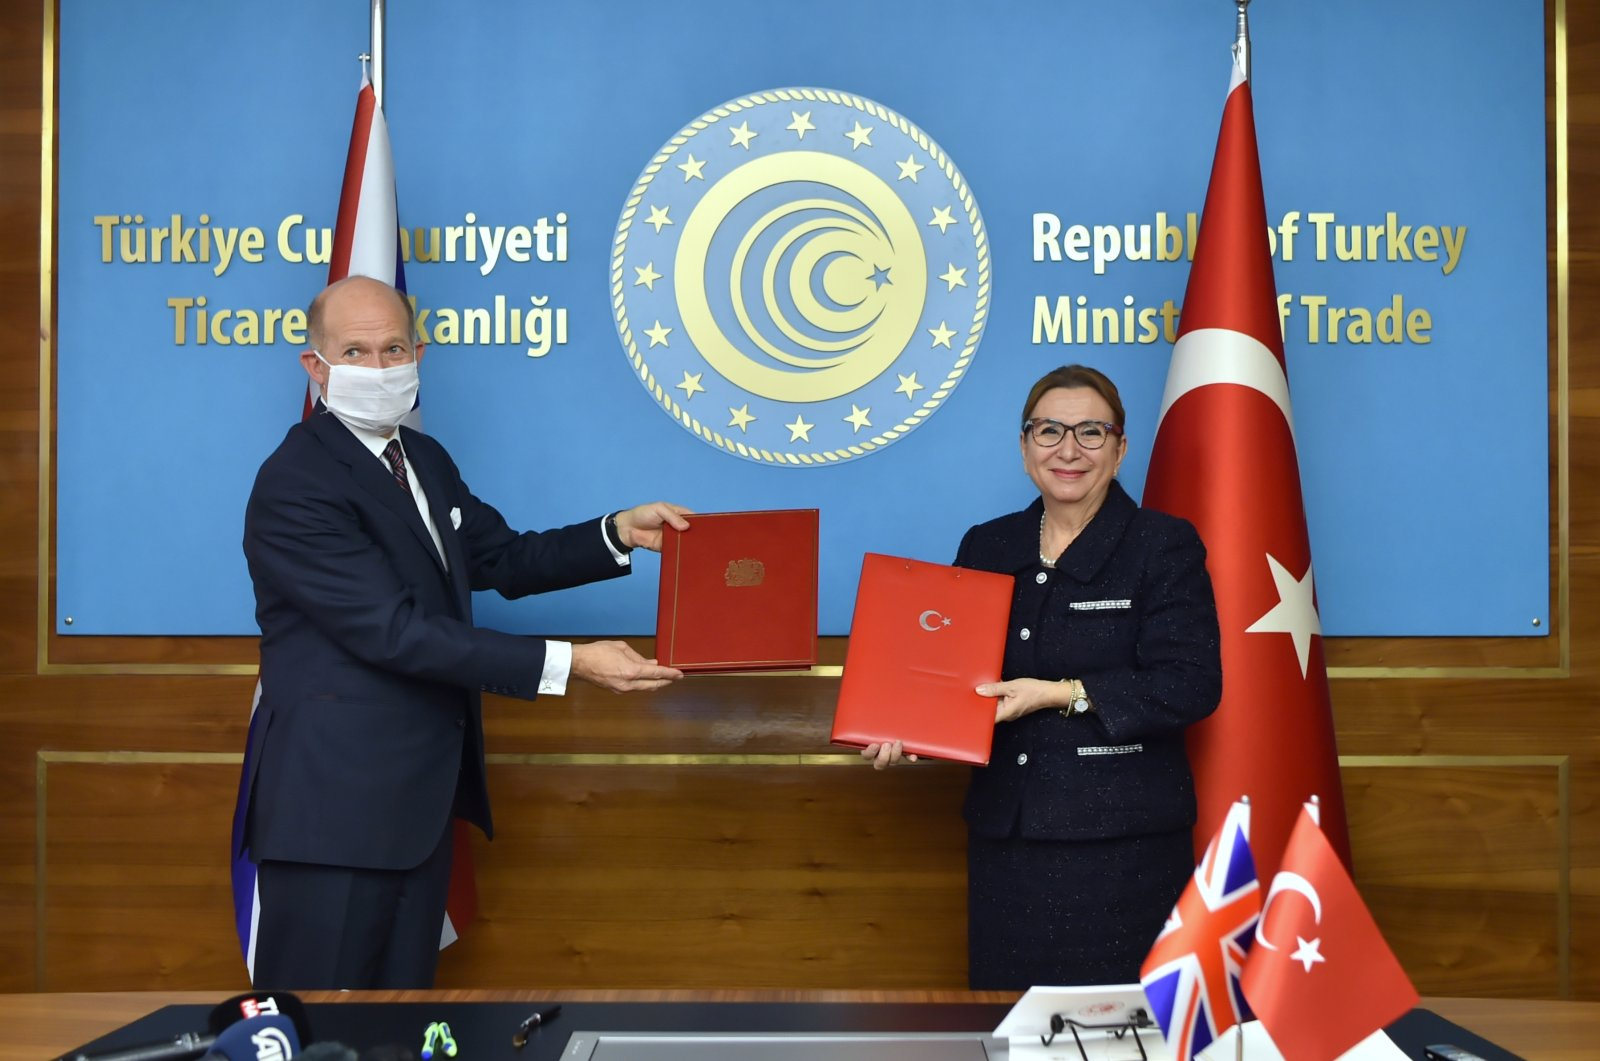 Trade Minister Ruhsar Pekcan (R) and the U.K.'s Ambassador to Ankara Dominick Chilcott are seen on the sidelines of the signing ceremony of the Turkey-U.K. free trade agreement in the capital Ankara, Turkey, Dec. 29, 2020. (AA Photo)